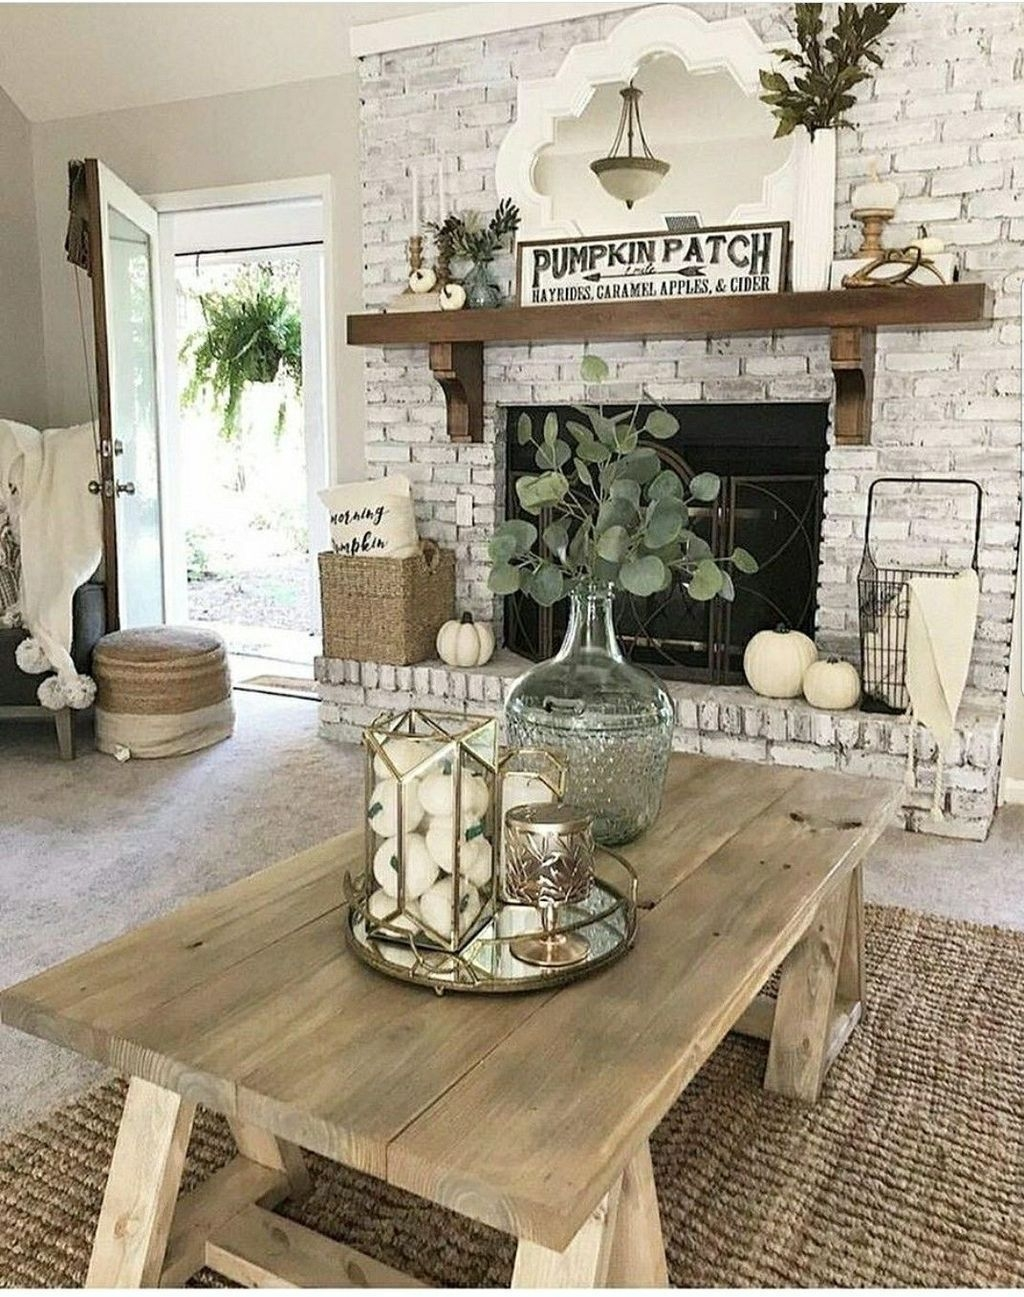 The Best Living Room Decorating Ideas Trends 2019 44